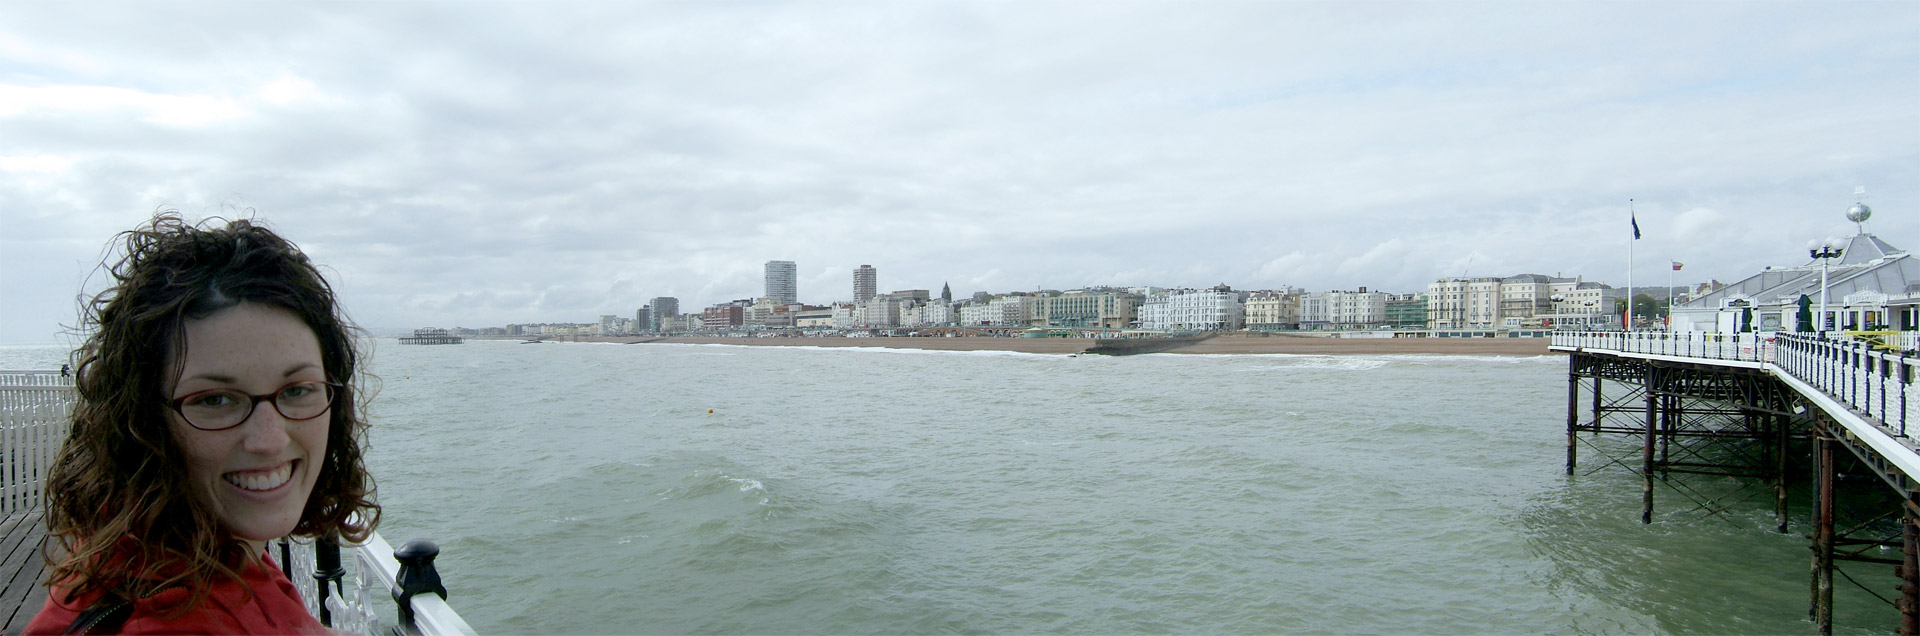 View of the seafront from the pier